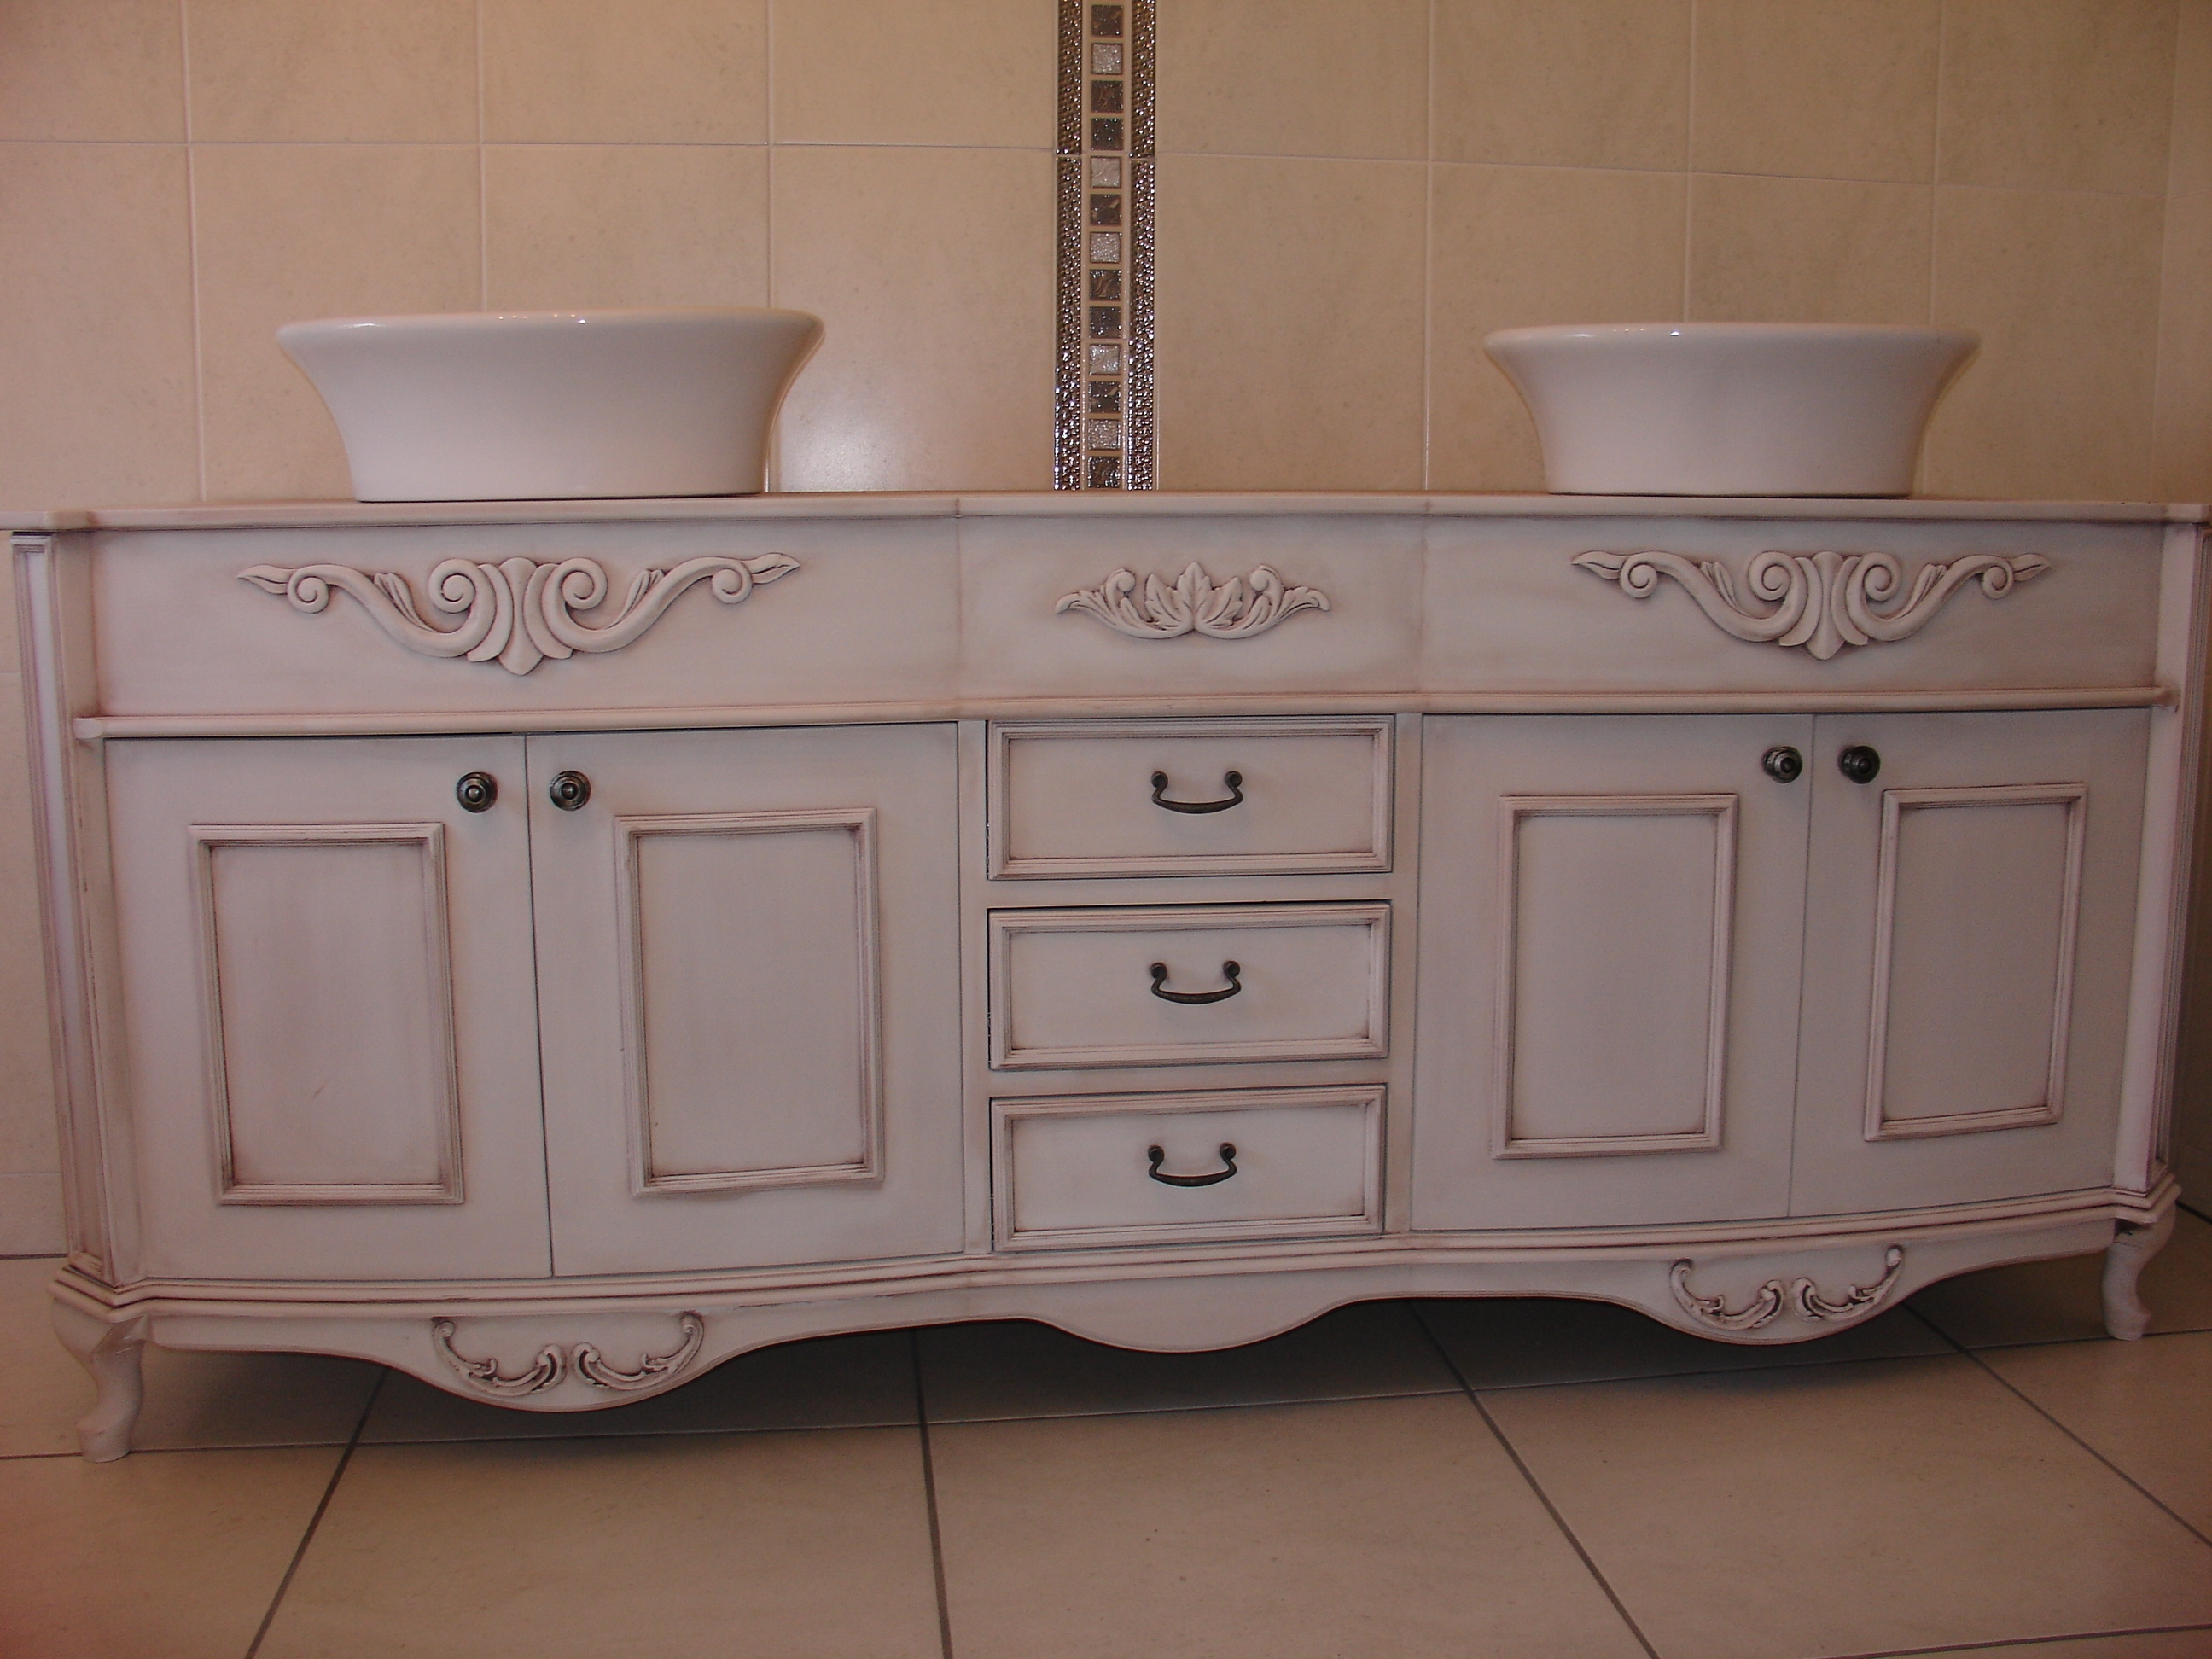 Bathroom Vanity .Co.Za vanities | wilcotimbers